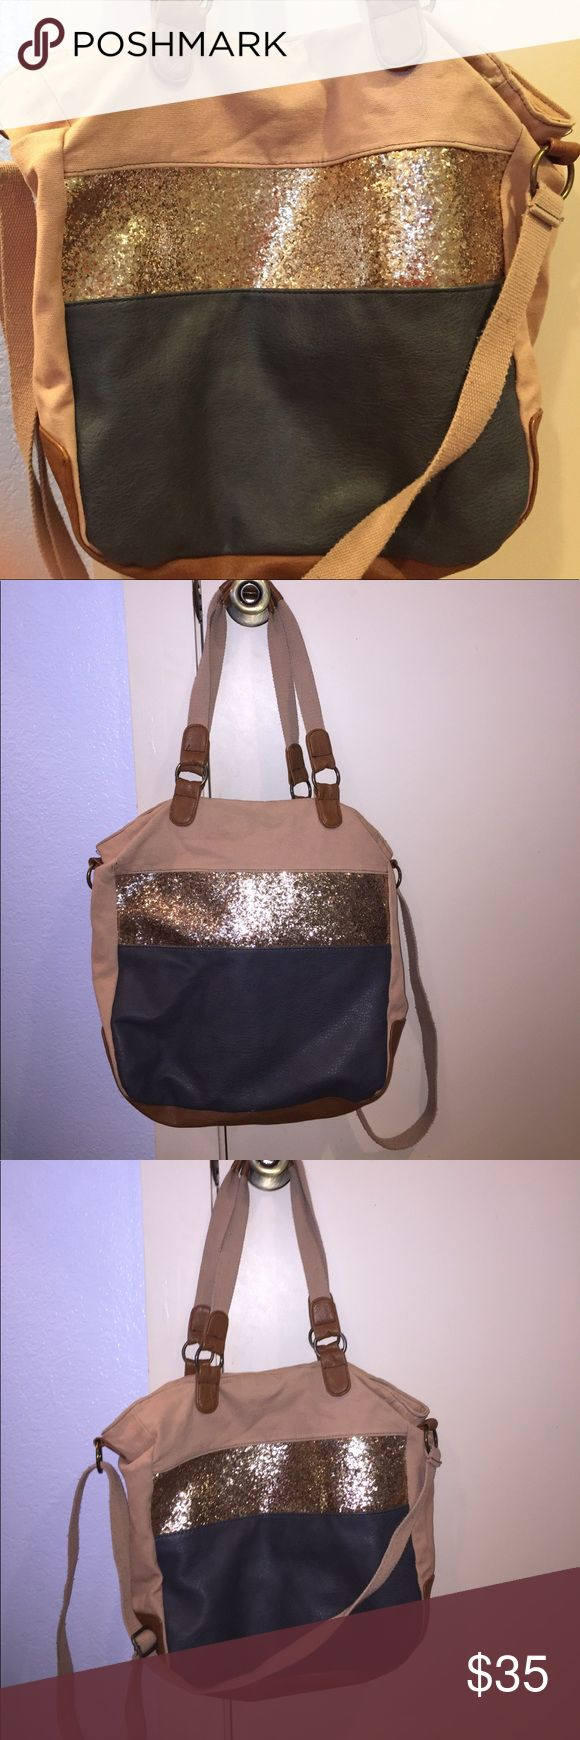 Adjustable bag/tote Gold glitter, gray and brown leather with tan base. comes with an adjustable cross body strap. makes a great school or travel bag and is in perfect condition. American Eagle Outfitters Bags Totes